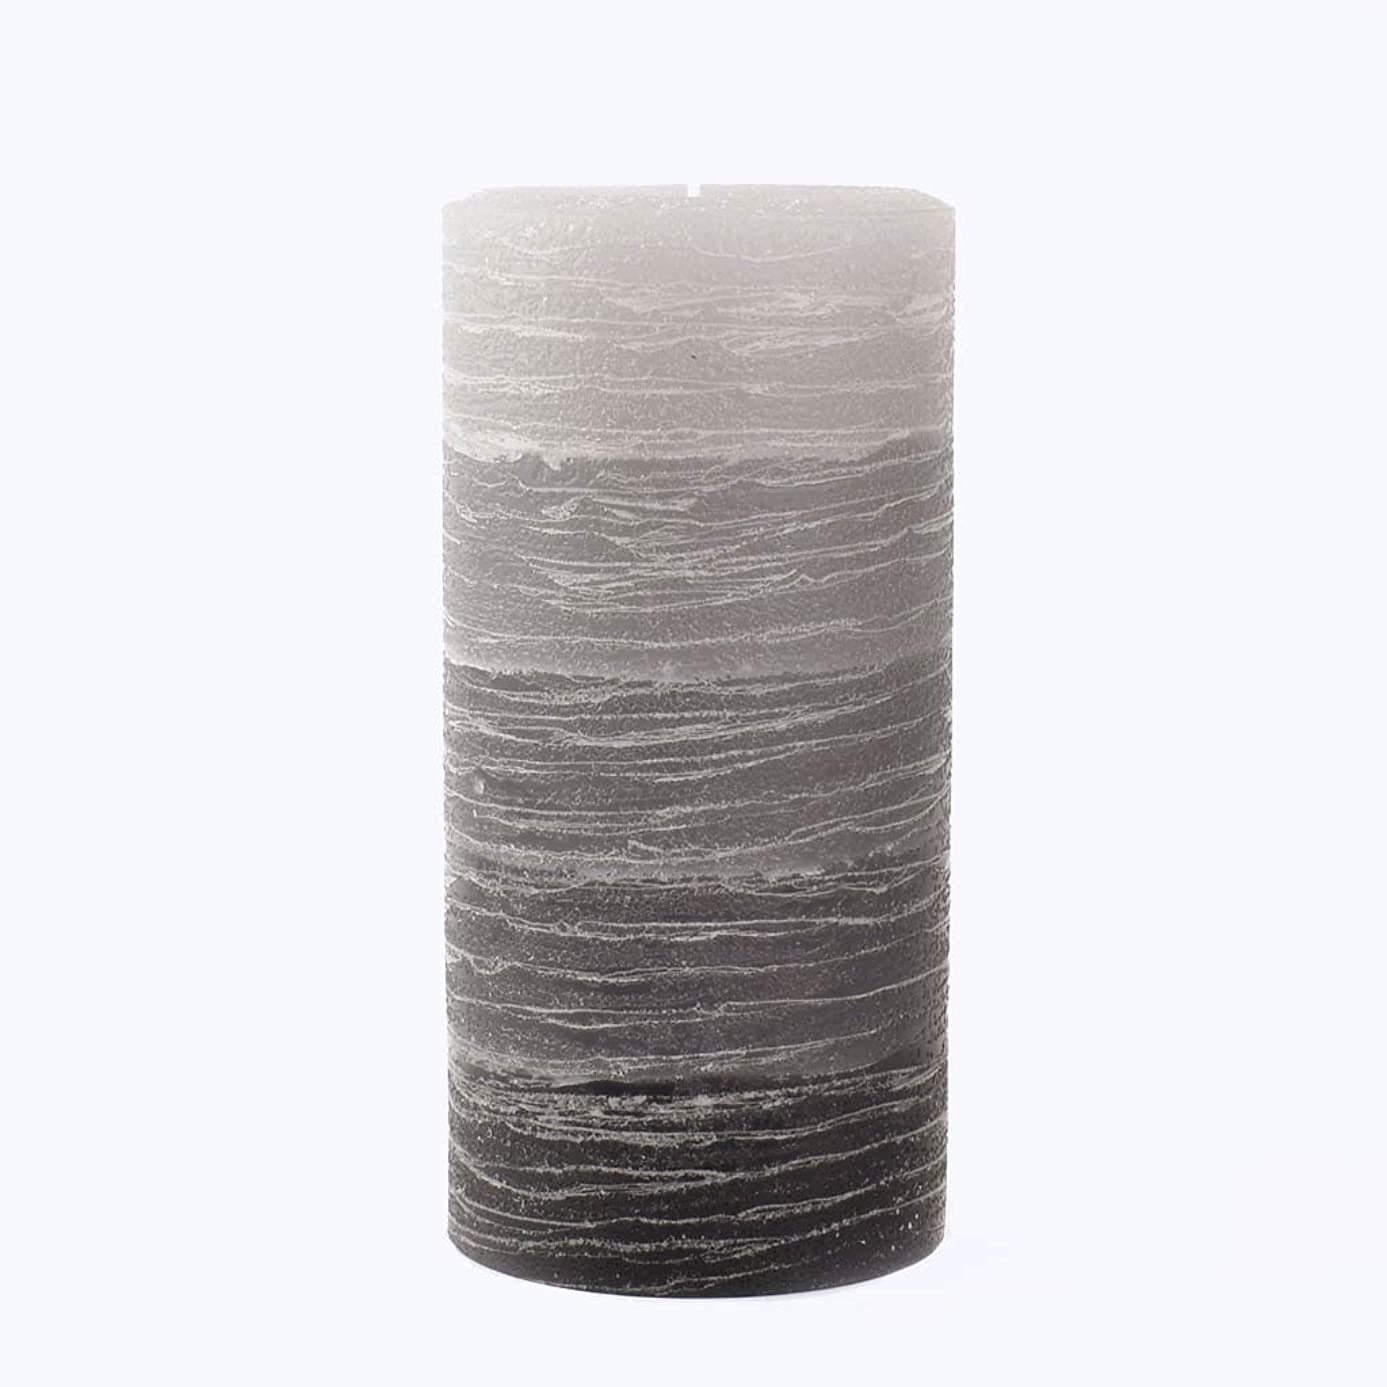 Nordic Candle - Layered Pillar Candle - 3x6 Inch Gray - Unscented